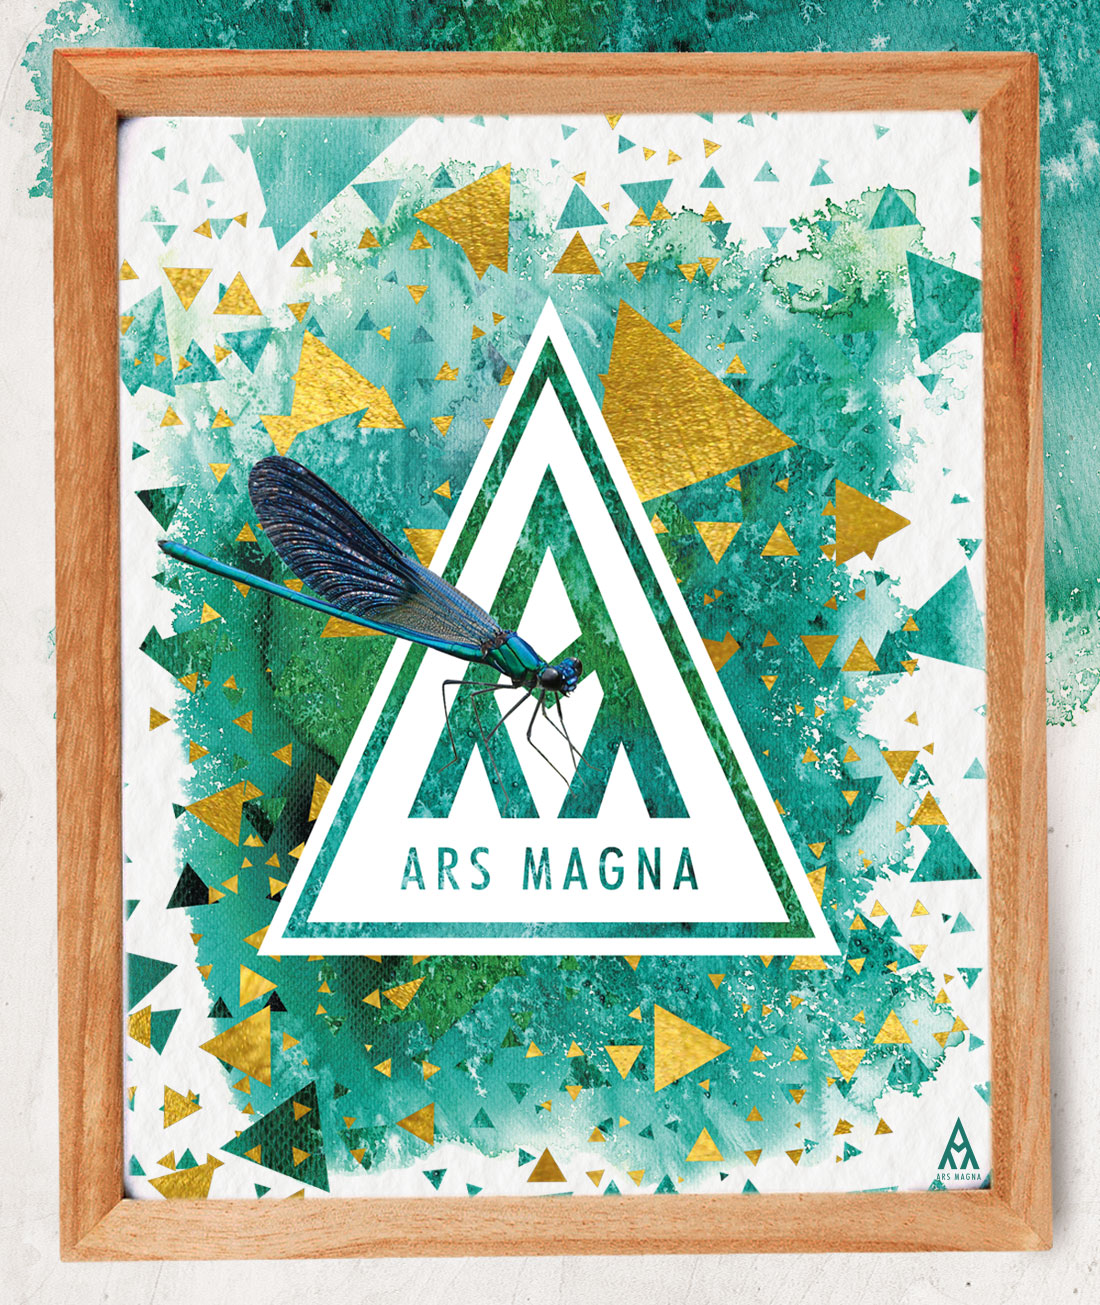 Ars Magna Design Watercolor Kunstdruck Motiv Emerald Prism